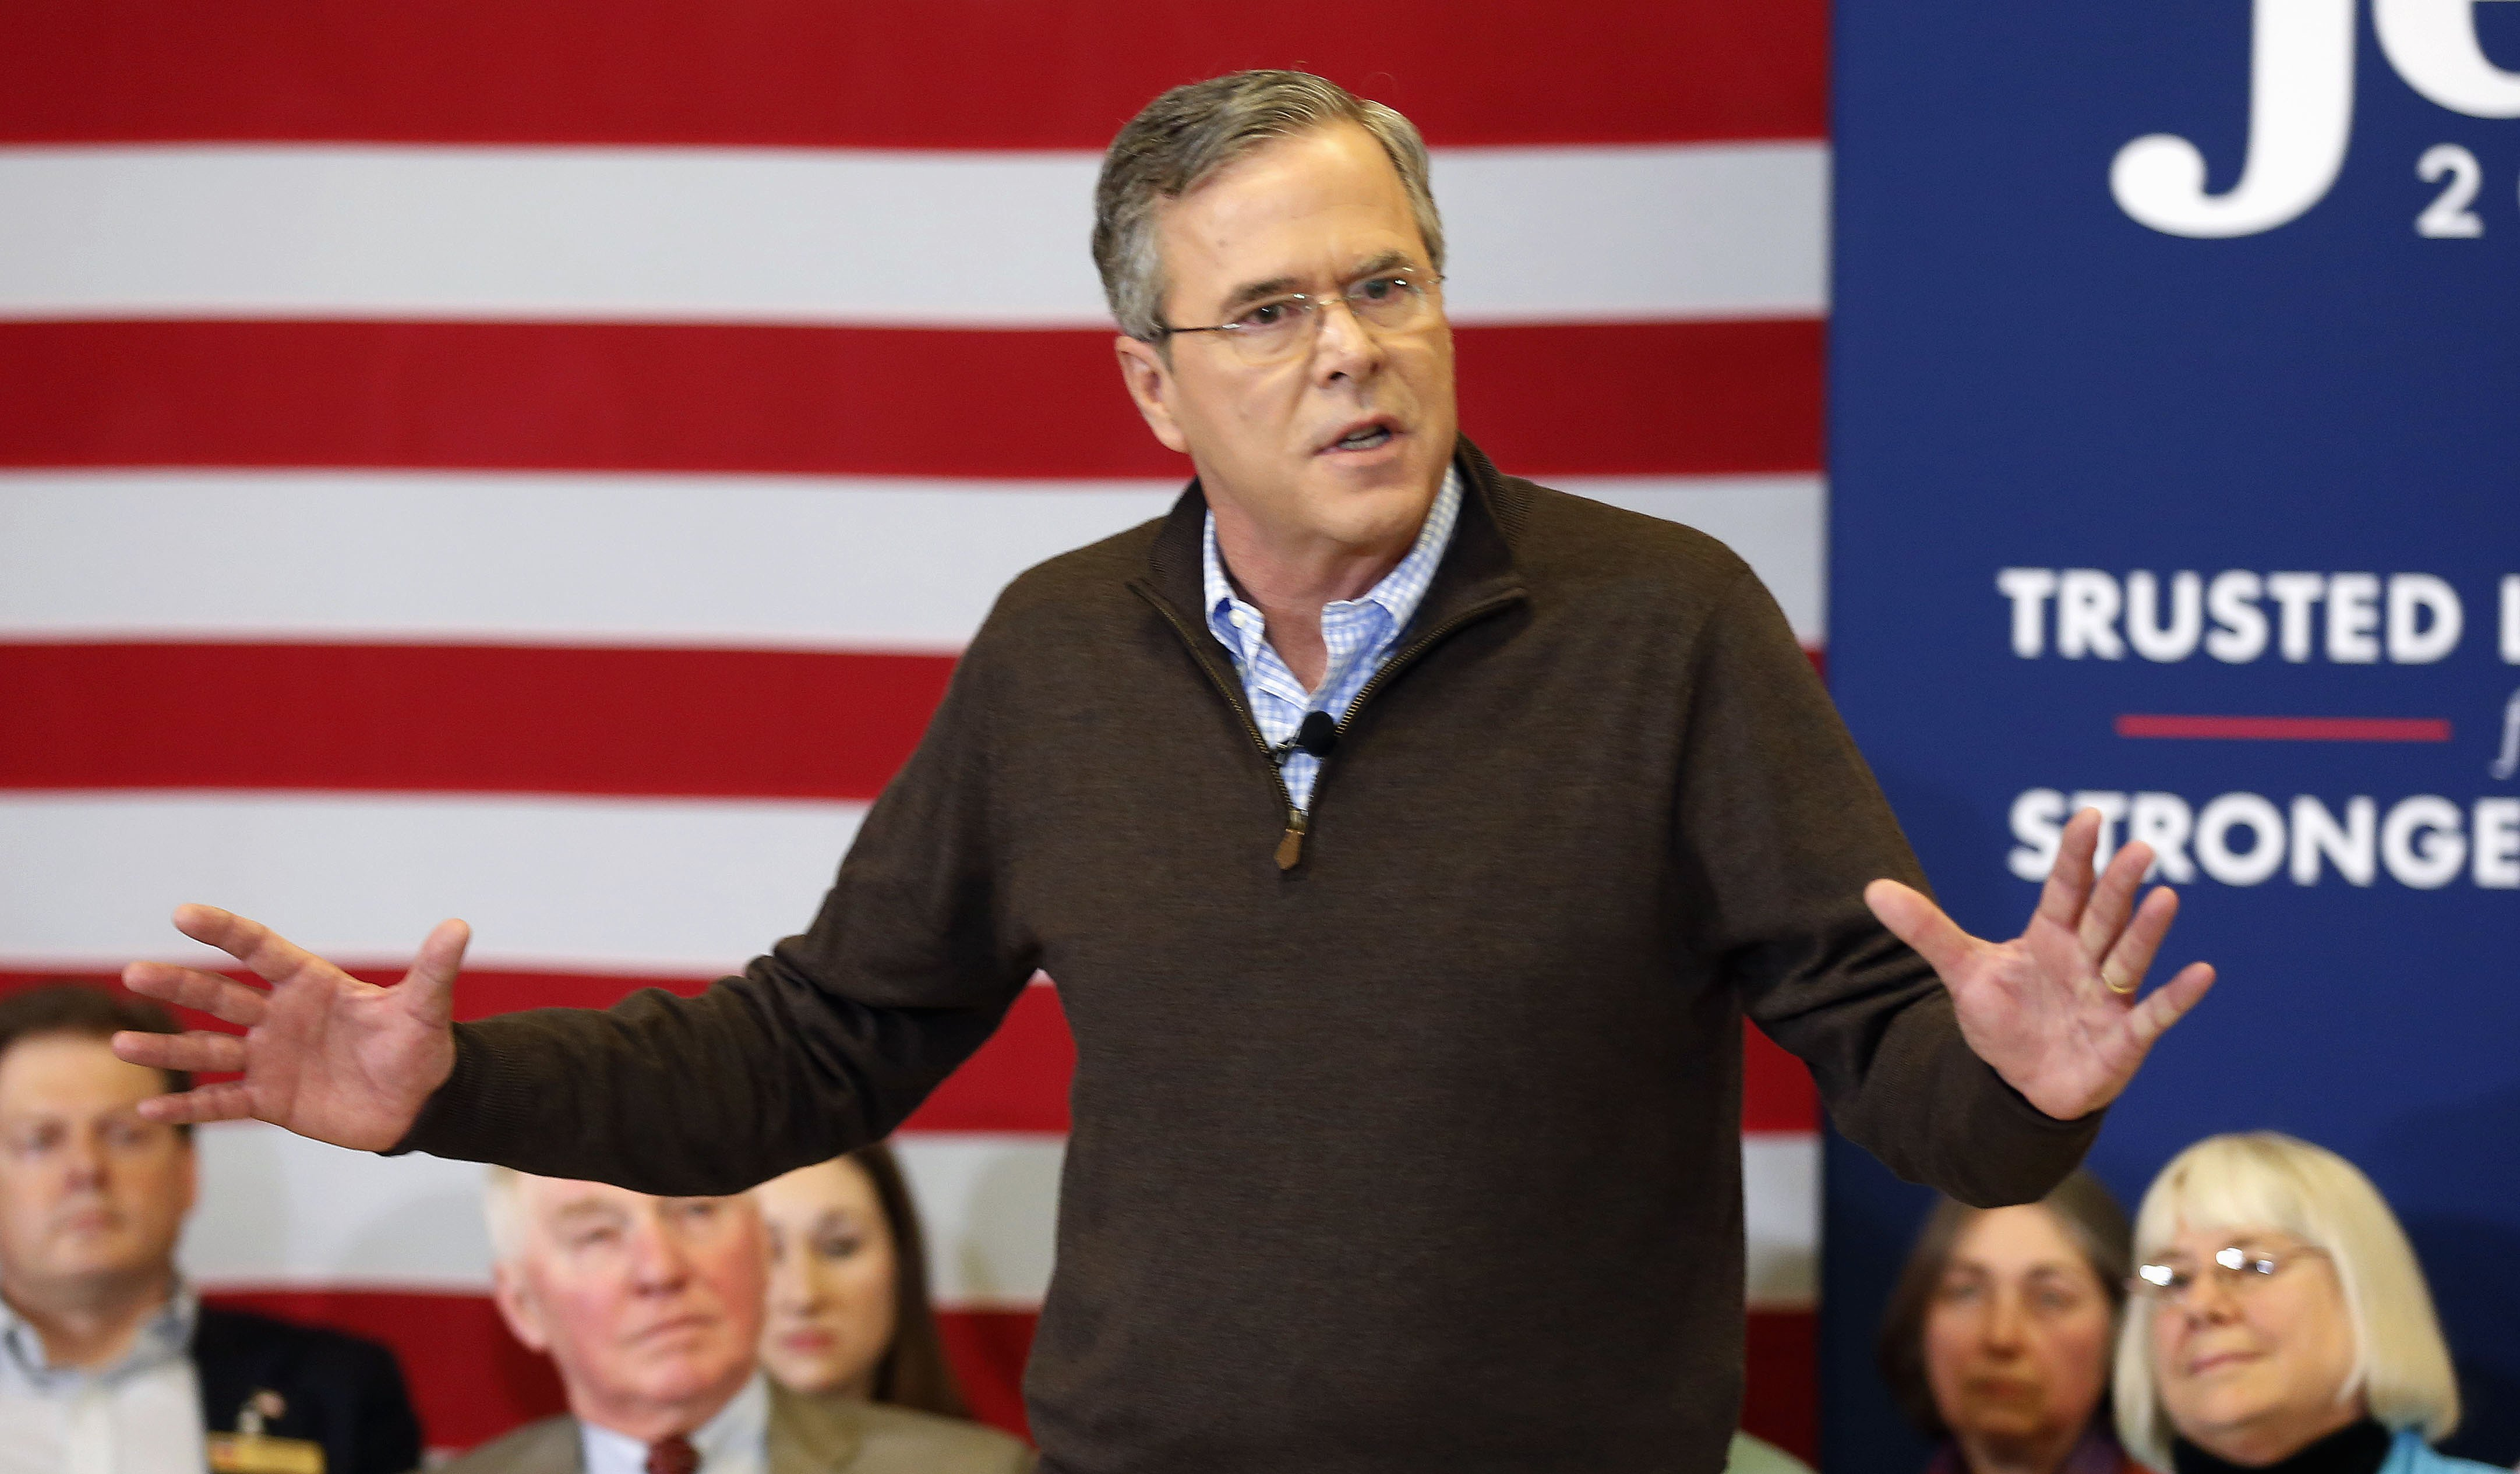 Jeb Bush speaks during a campaign stop at Souhegan High School, on Jan. 16, 2016, in Amherst, NH.